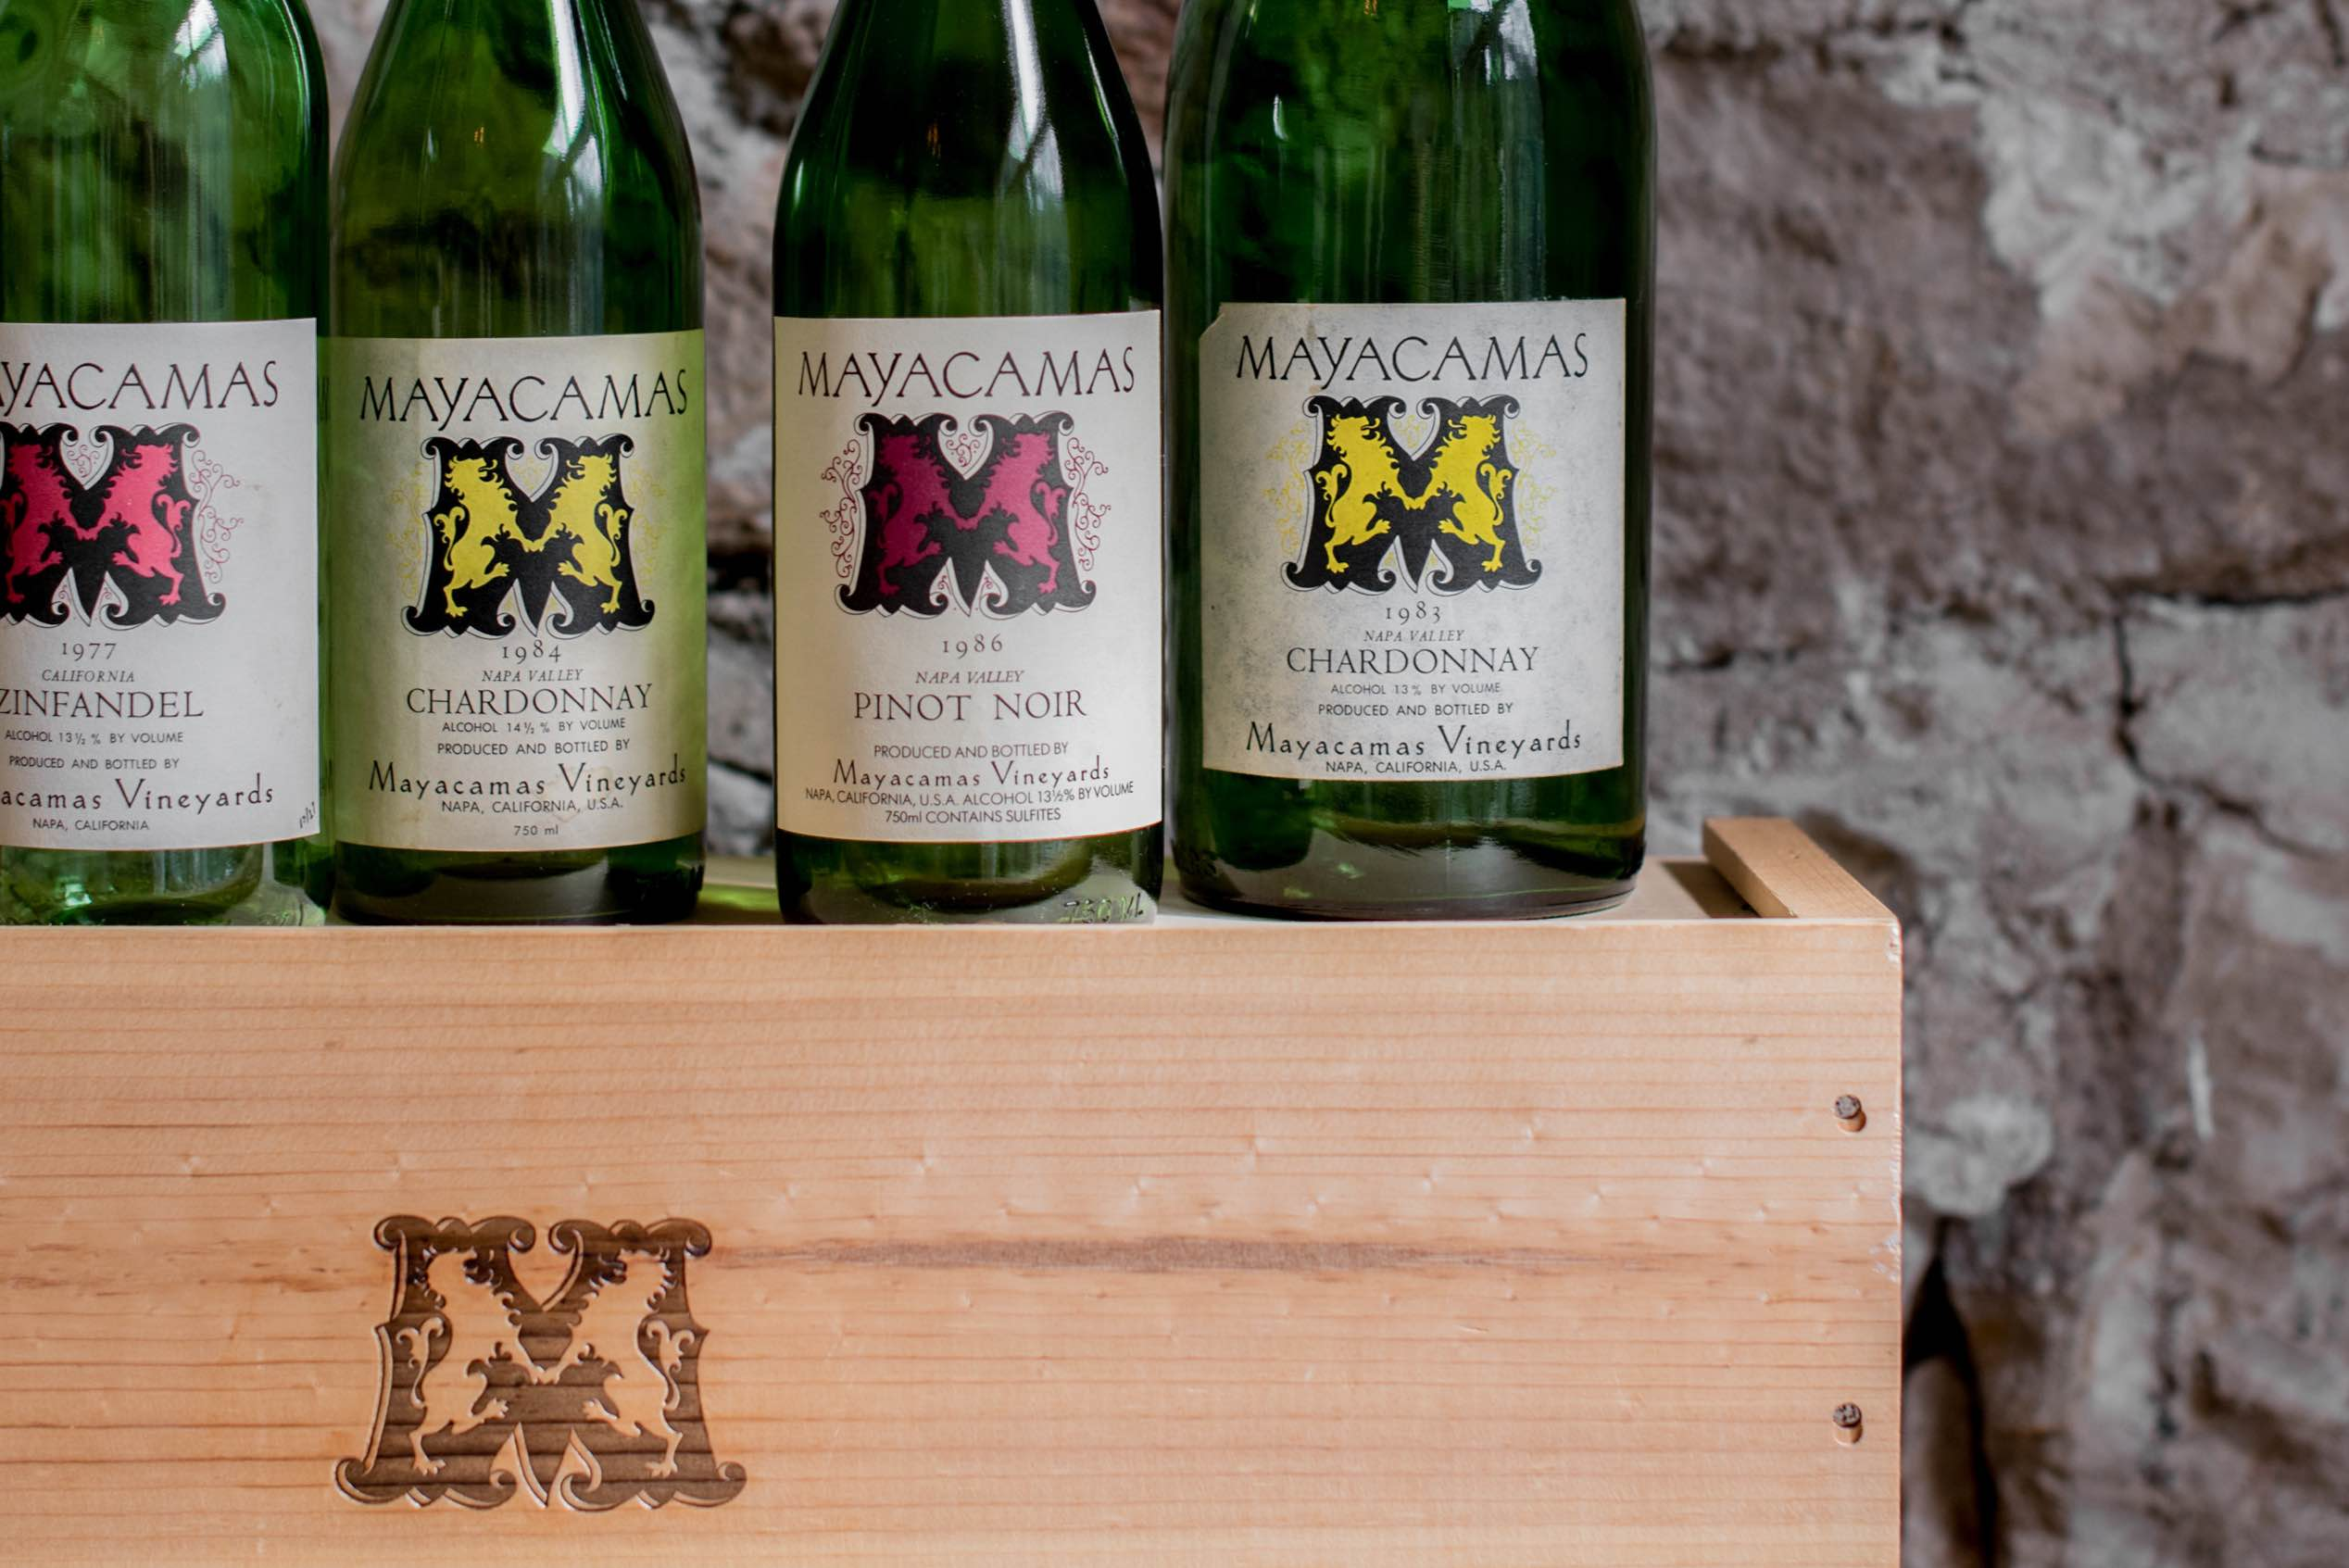 The wines of Mayacamas Vineyards